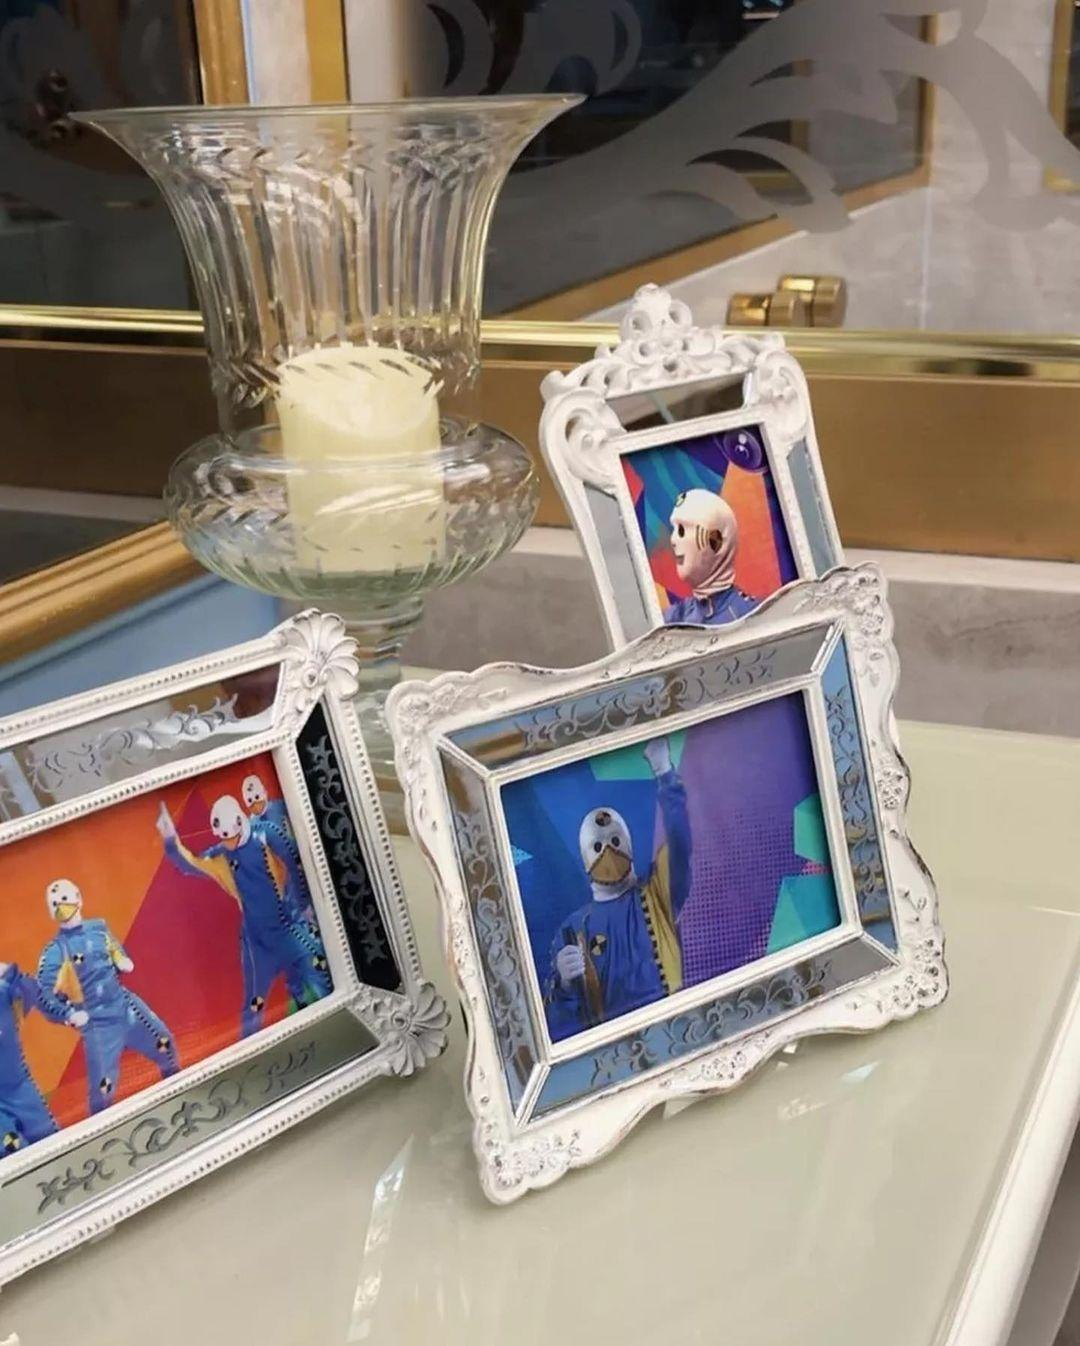 """Dolls in frames in the leader's room """"BBB 101 Day"""" - clone / Instagram"""